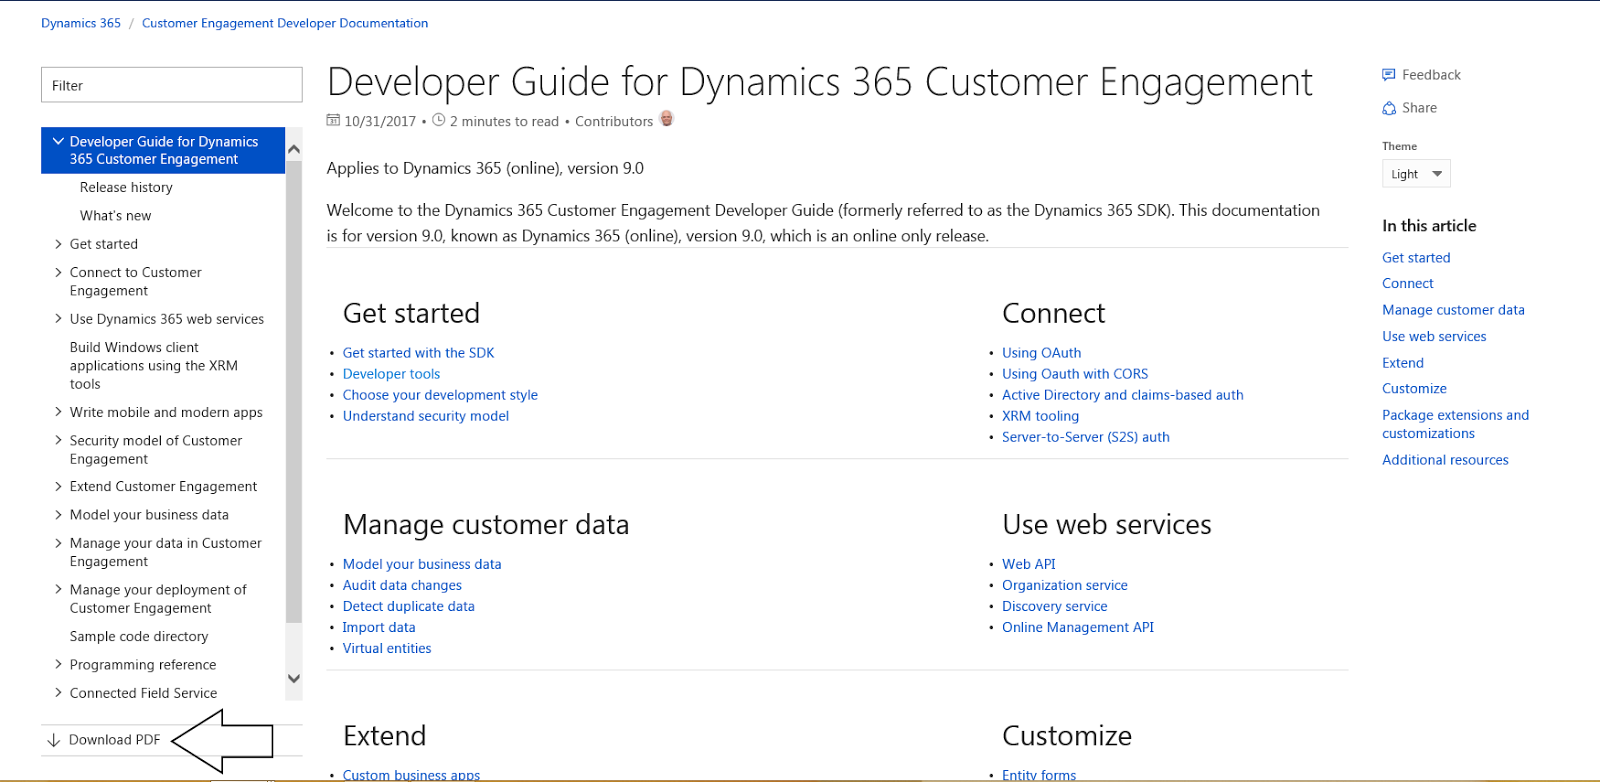 JOPX on CRM, Cloud and Analytics: The Dynamics 365 CE SDK is